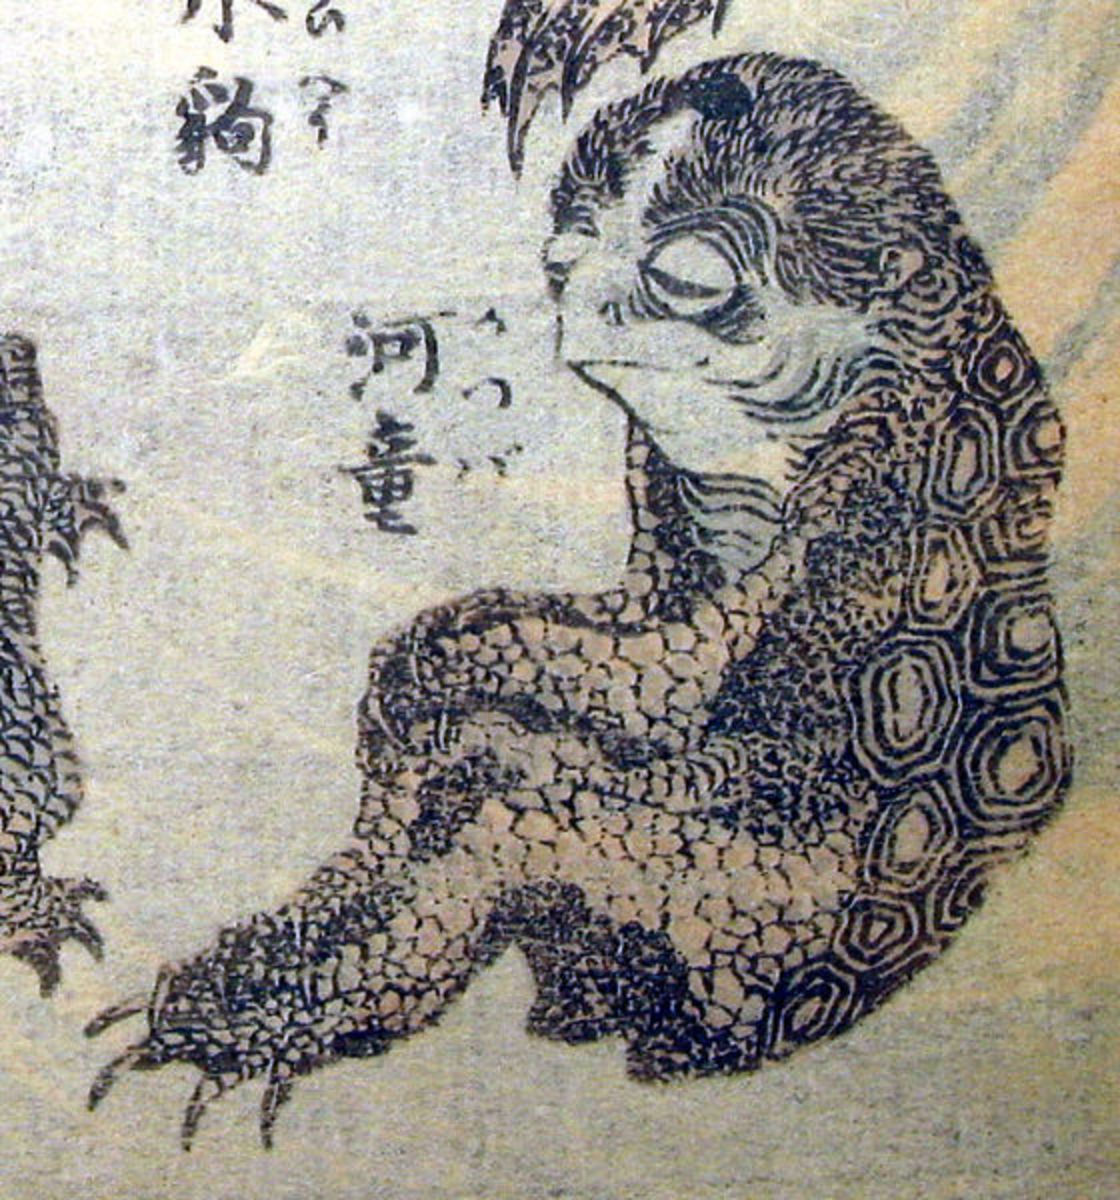 Depiction of a kappa by ukiyo-e master Katsushika Hokusai (1760-1849).